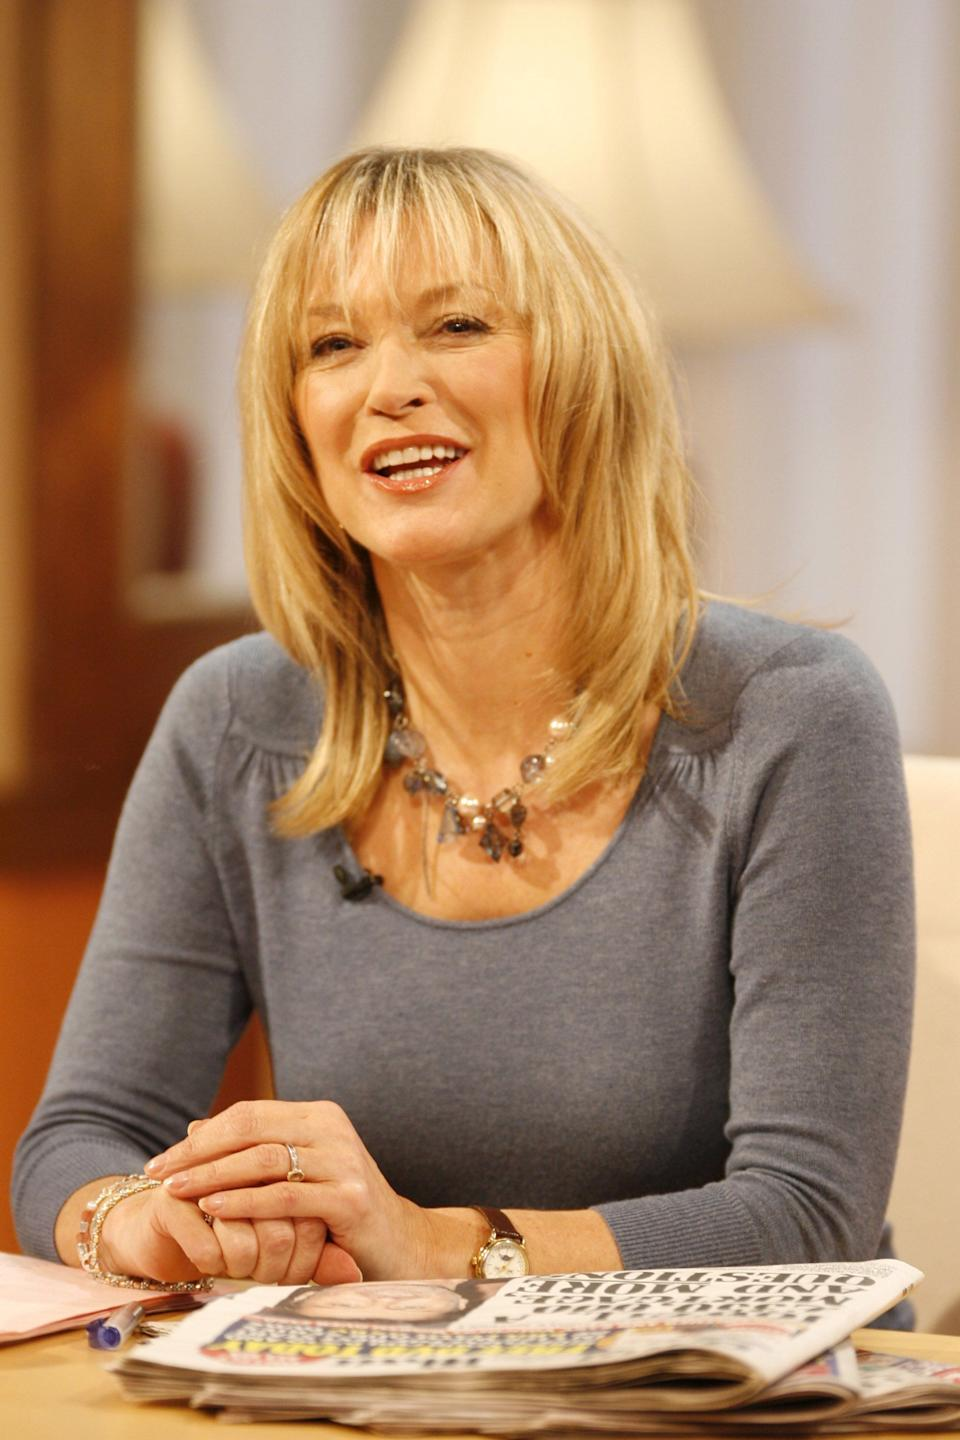 Another EastEnder who graced the Loose Women panel was Gillian Taylforth – better known as Walford's Kathy Beale.<br /><br />The actress enjoyed two stints as a Loose lady, first in 2006 and again in 2008.